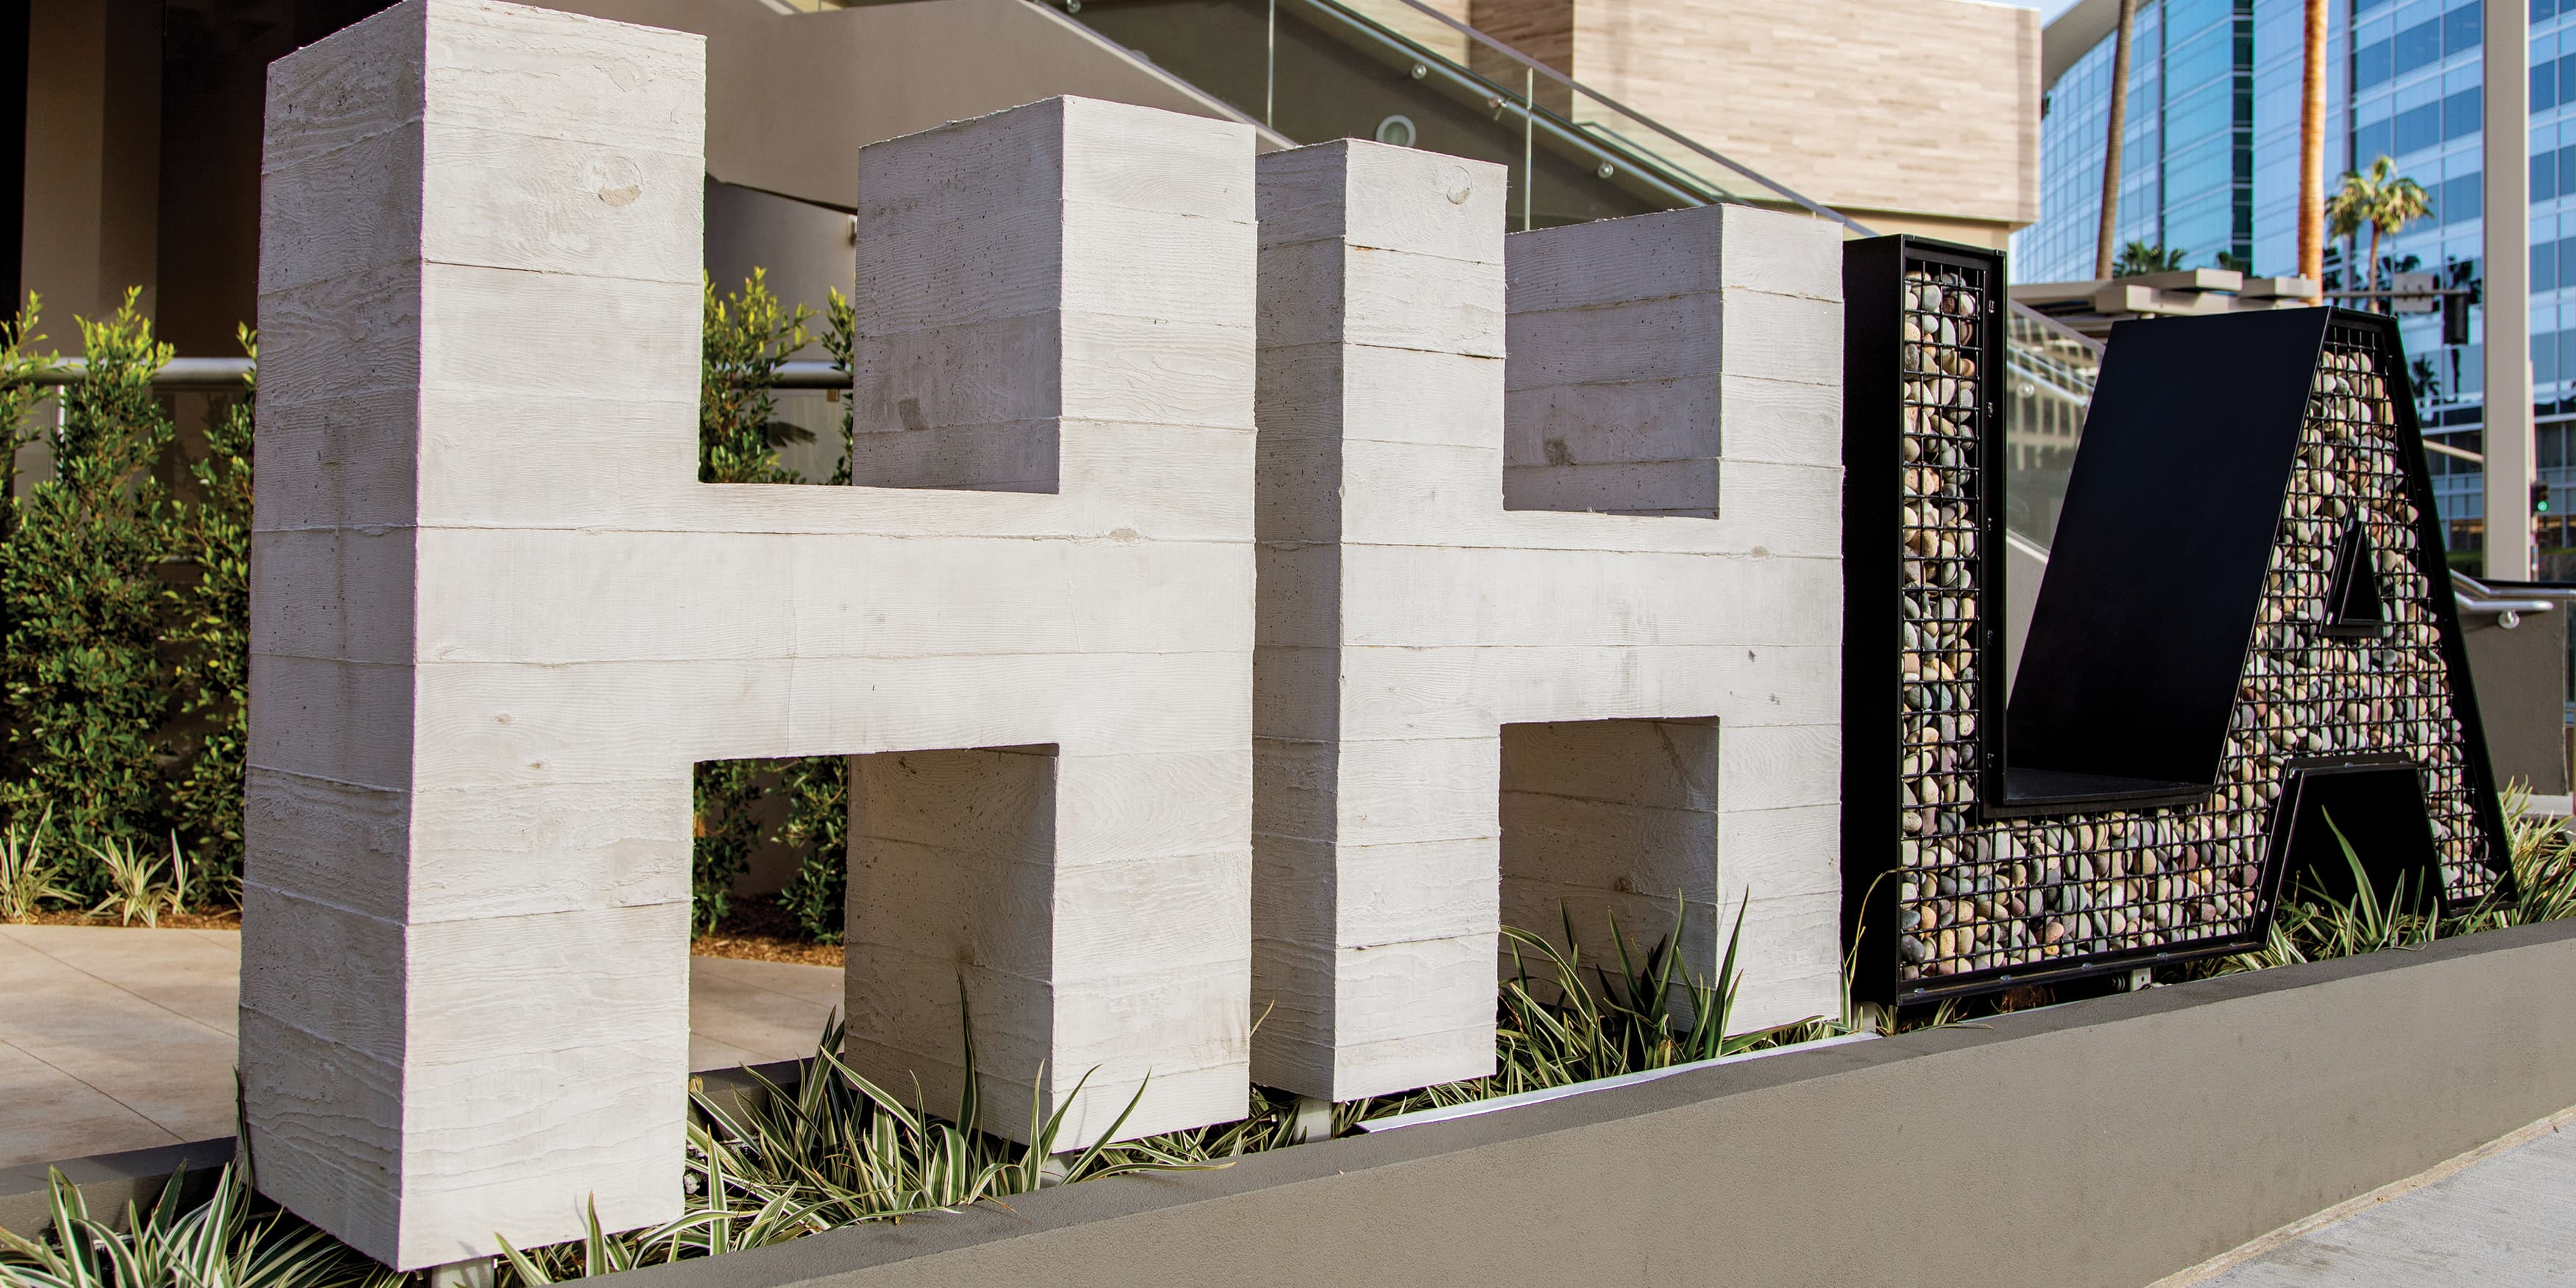 HHLA branded project identity monument